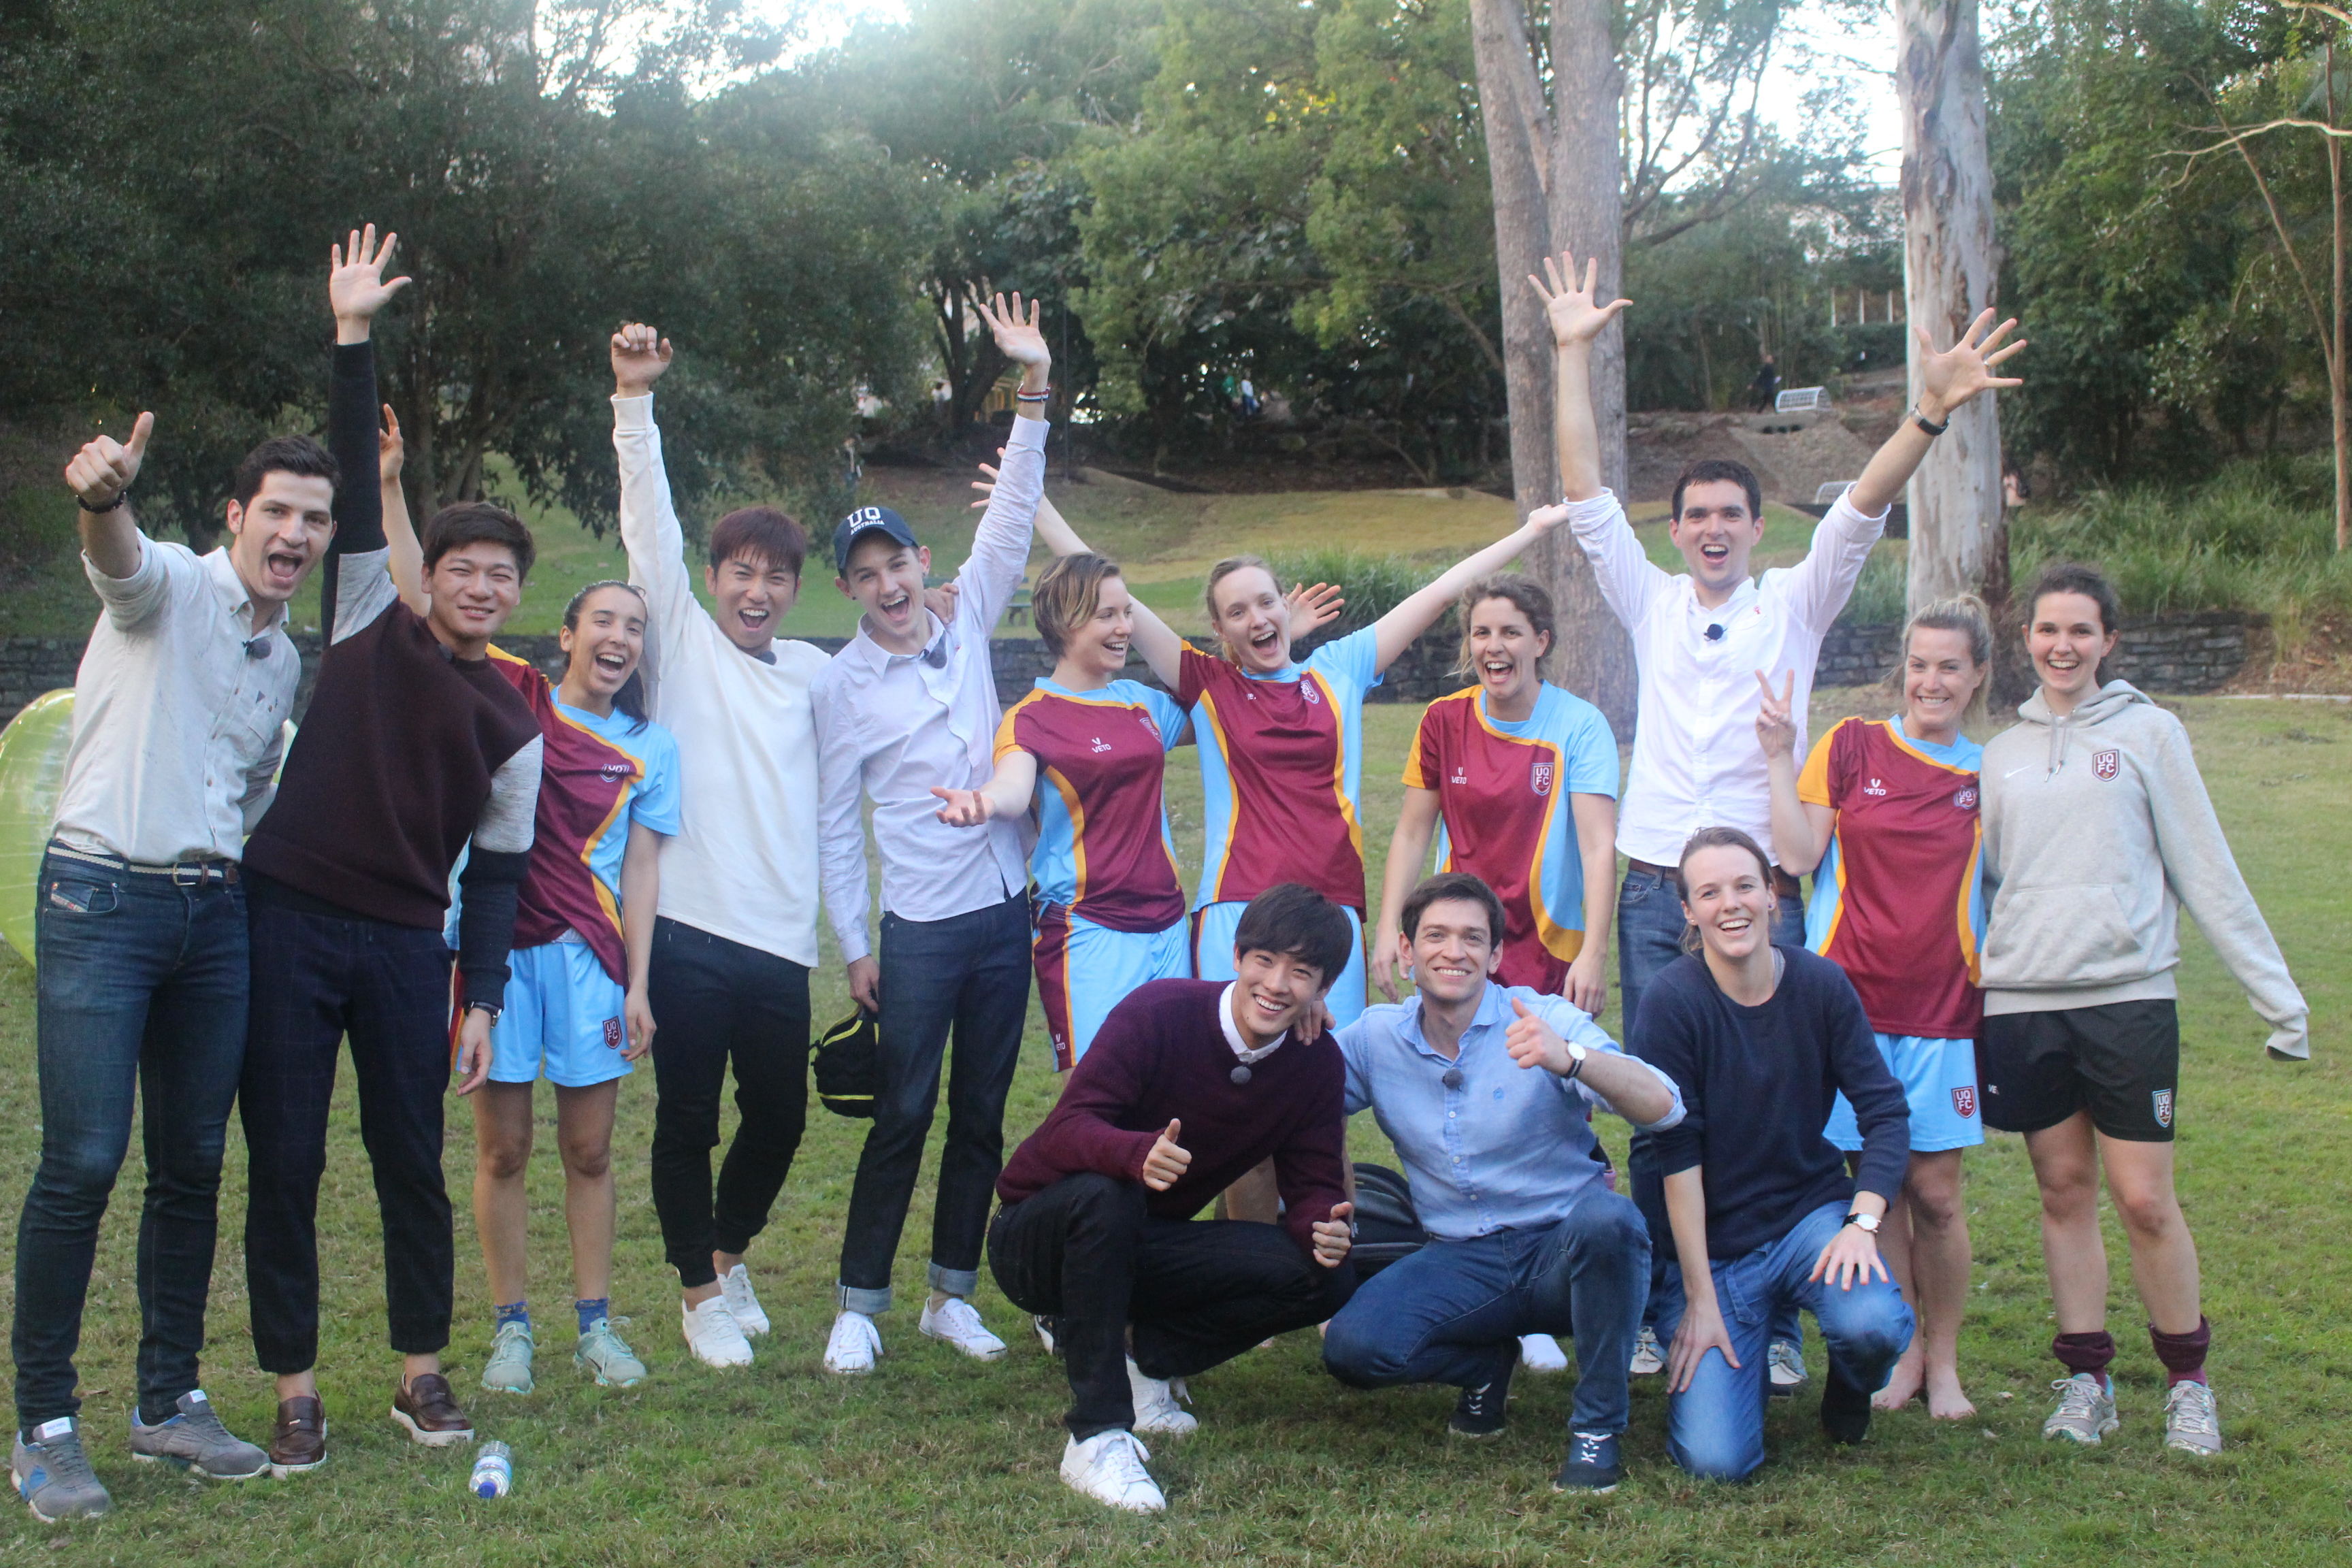 Abnormal Summit cast and the UQFC female soccer team after the match.